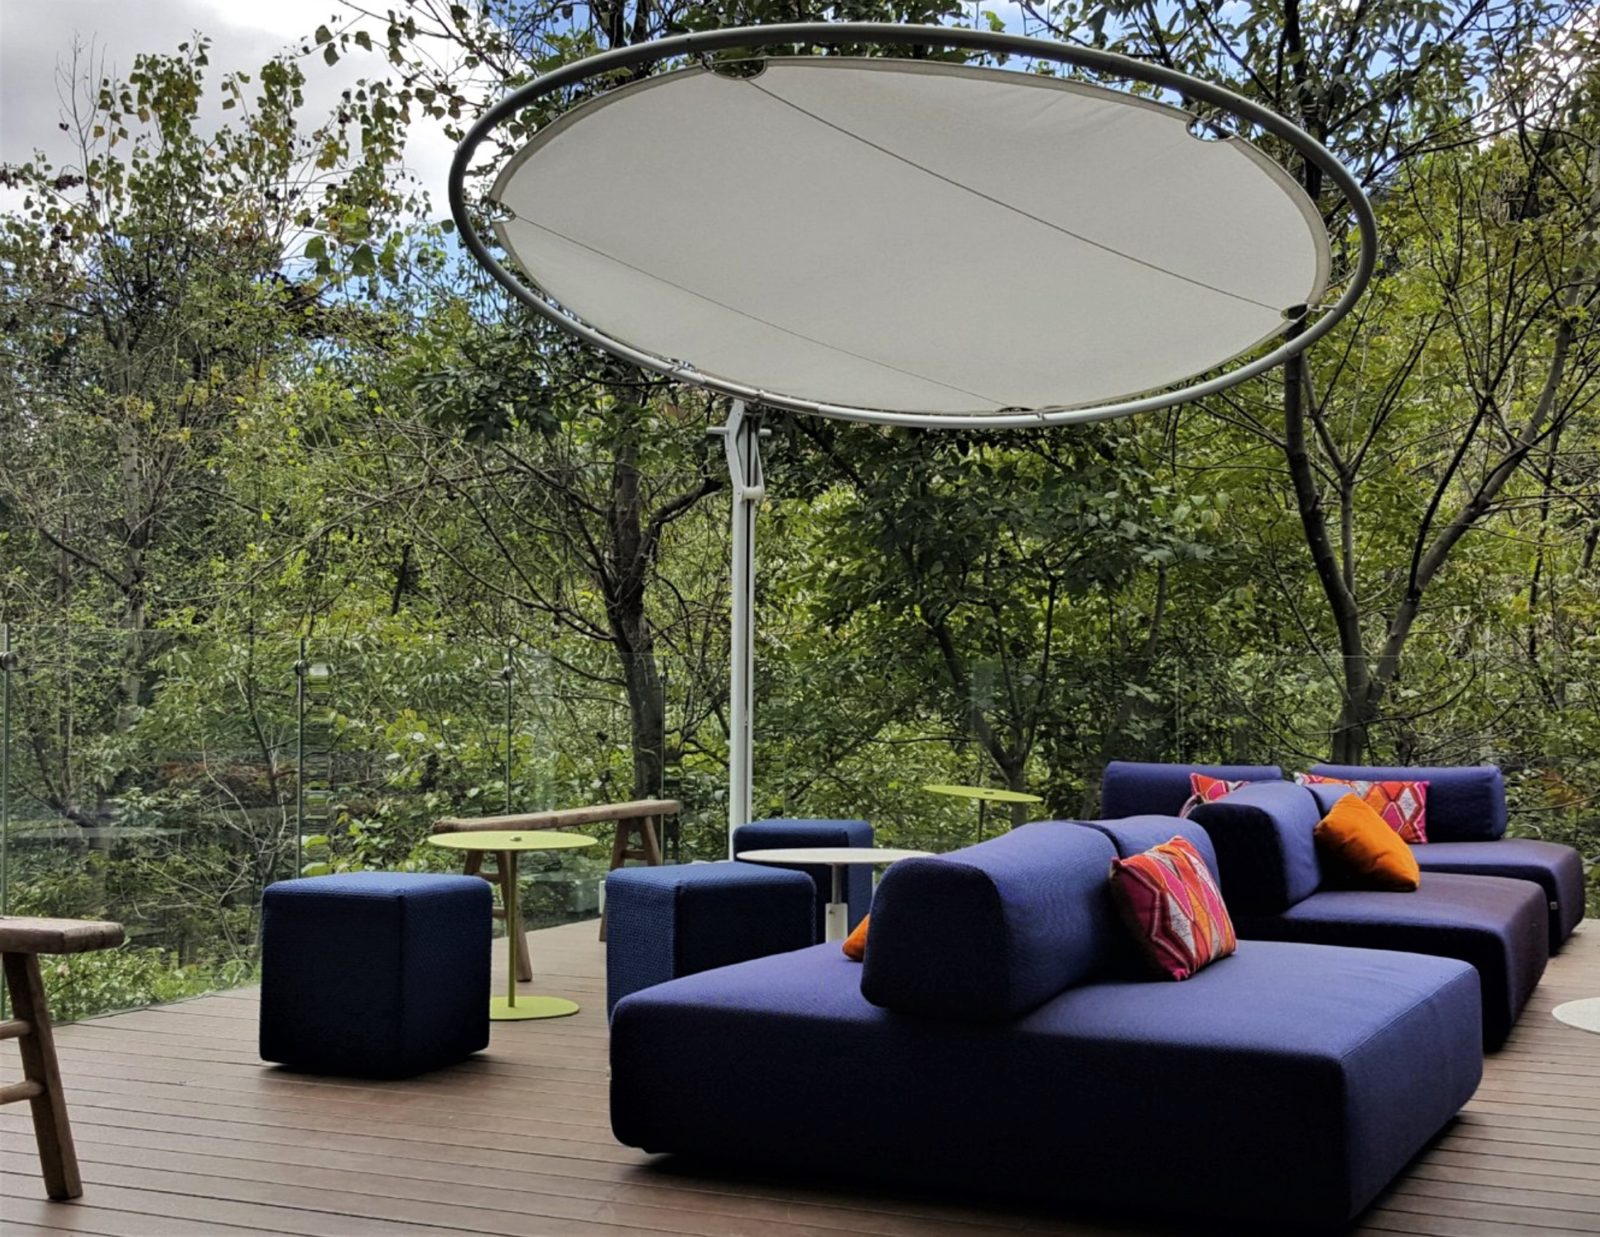 Outdoor Table And Chairs Umbrella